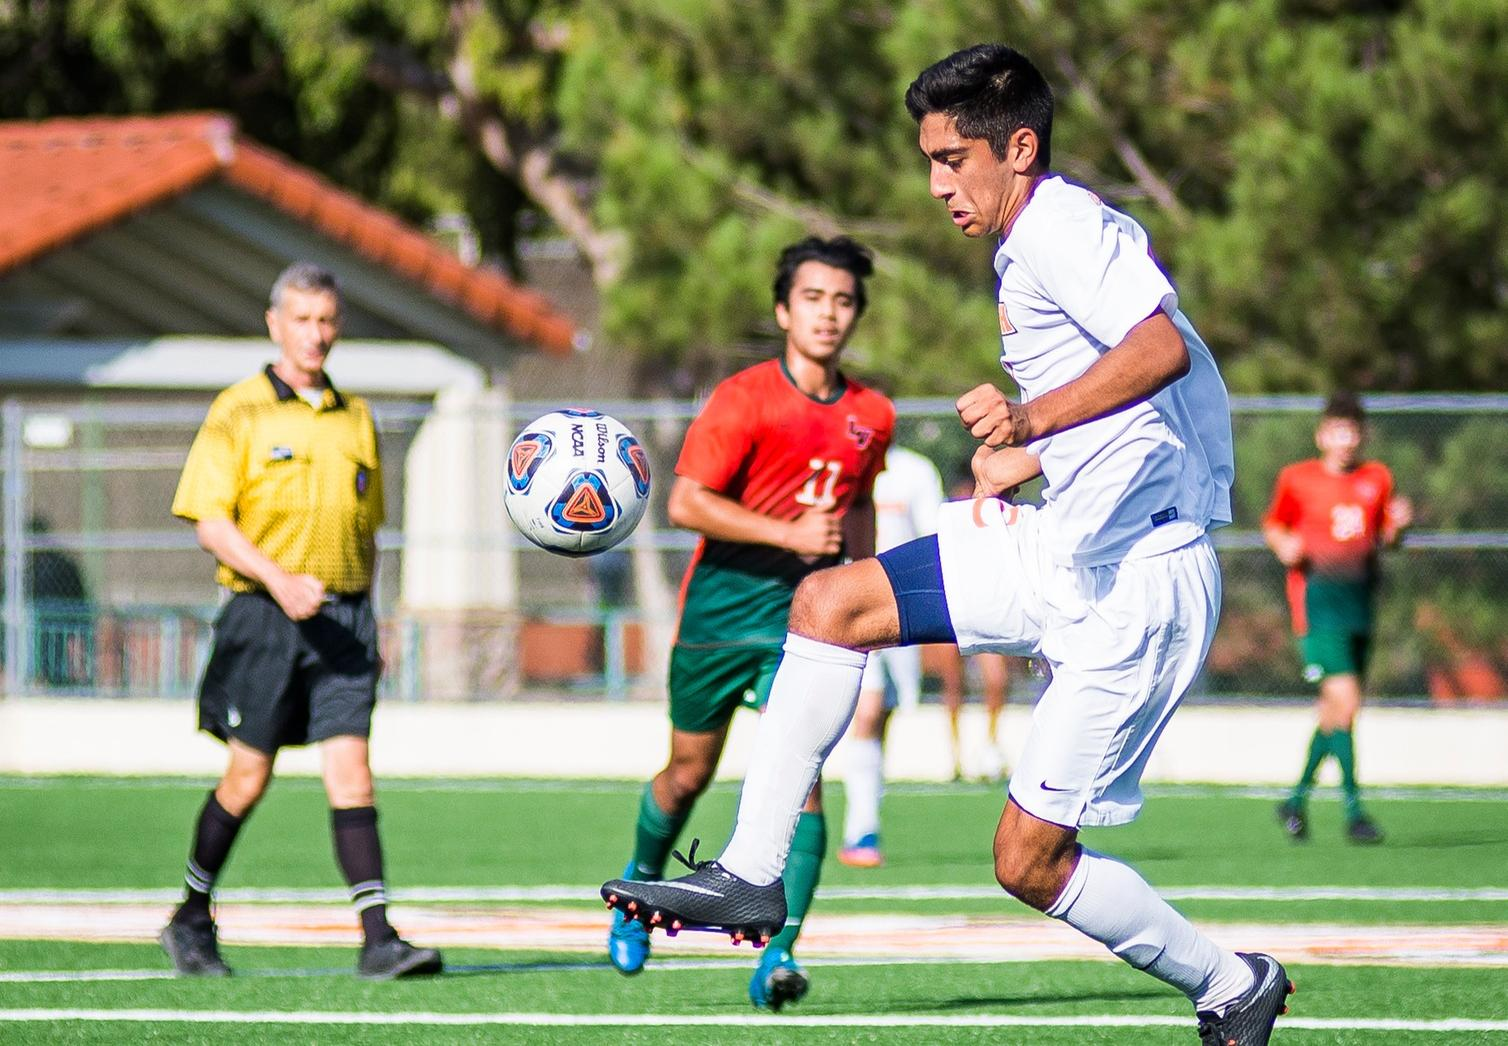 Mirchandani Scores Again at Northwest